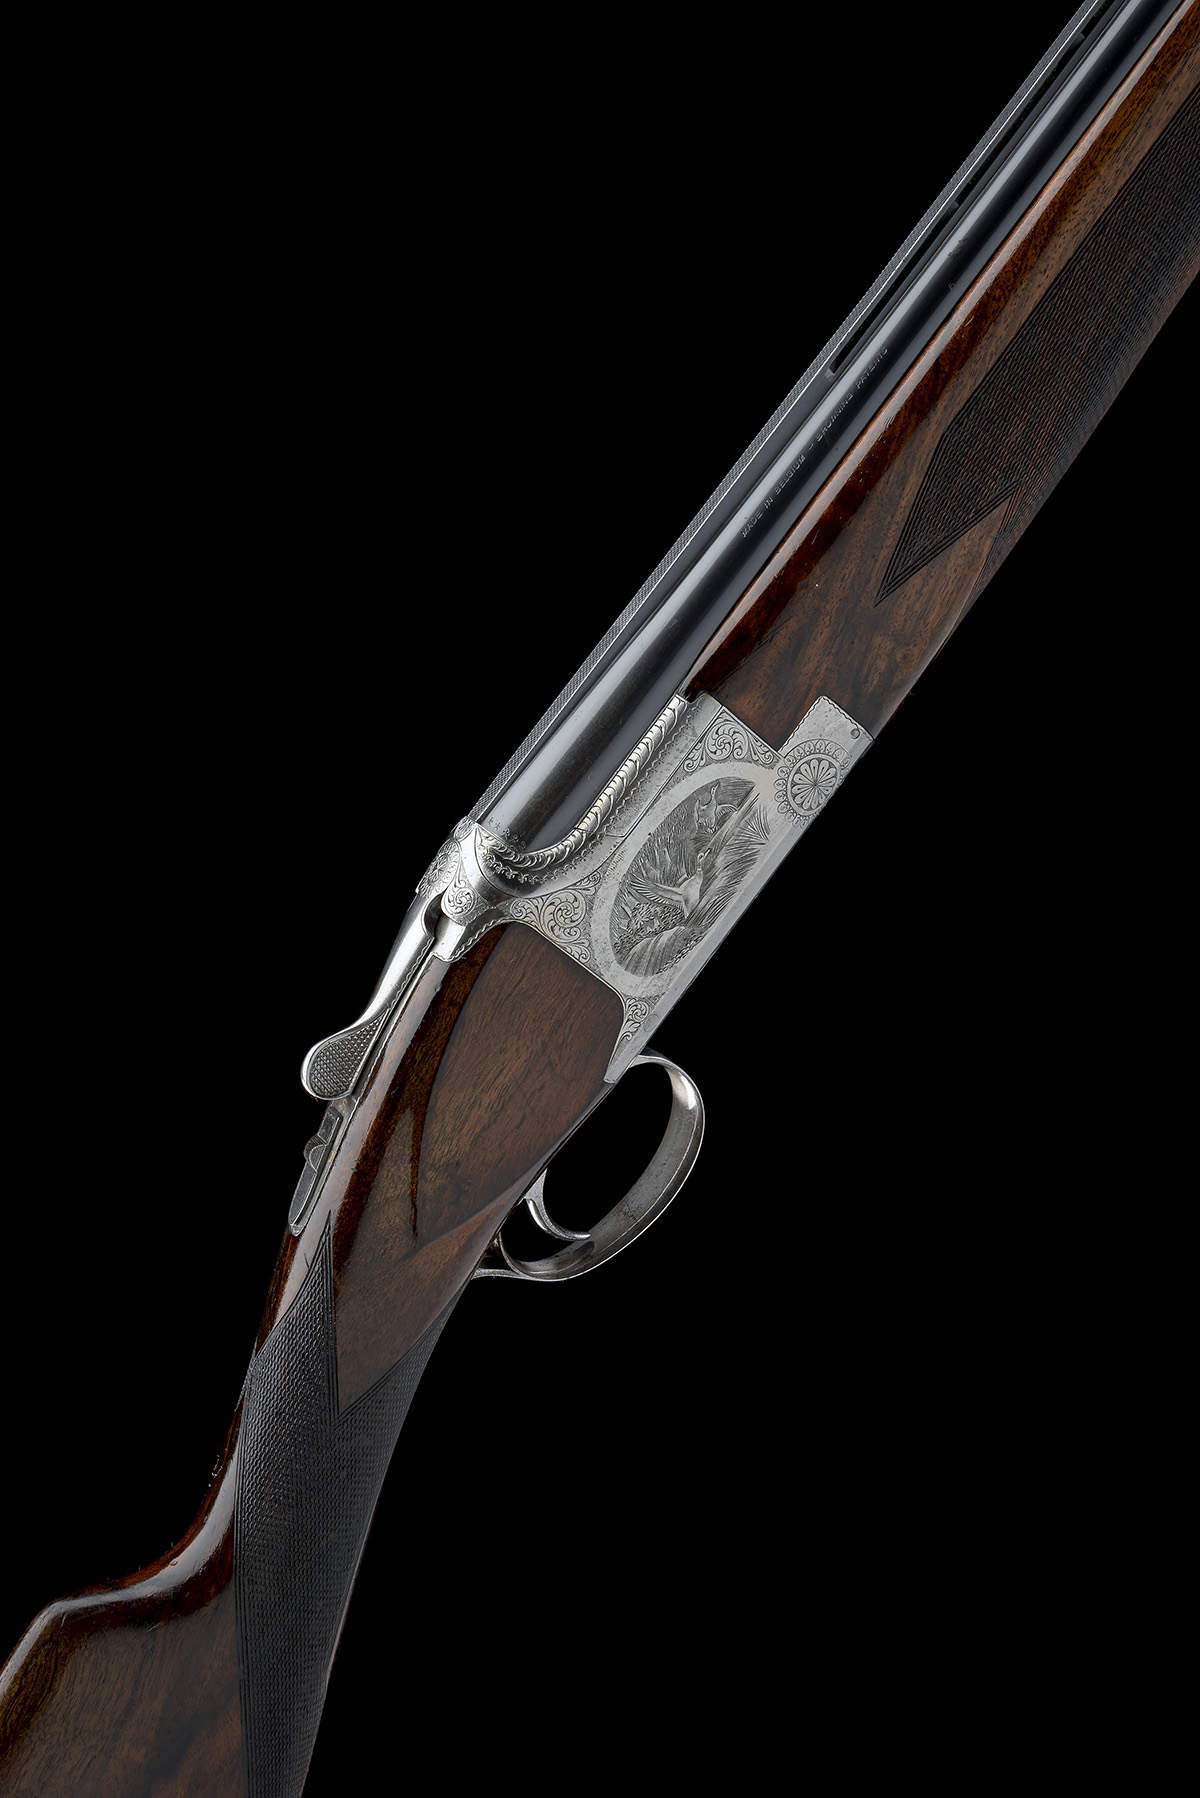 FABRIQUE NATIONALE A 12-BORE 'B2G' SINGLE-TRIGGER OVER AND UNDER EJECTOR, serial no. 34112 S74, 27